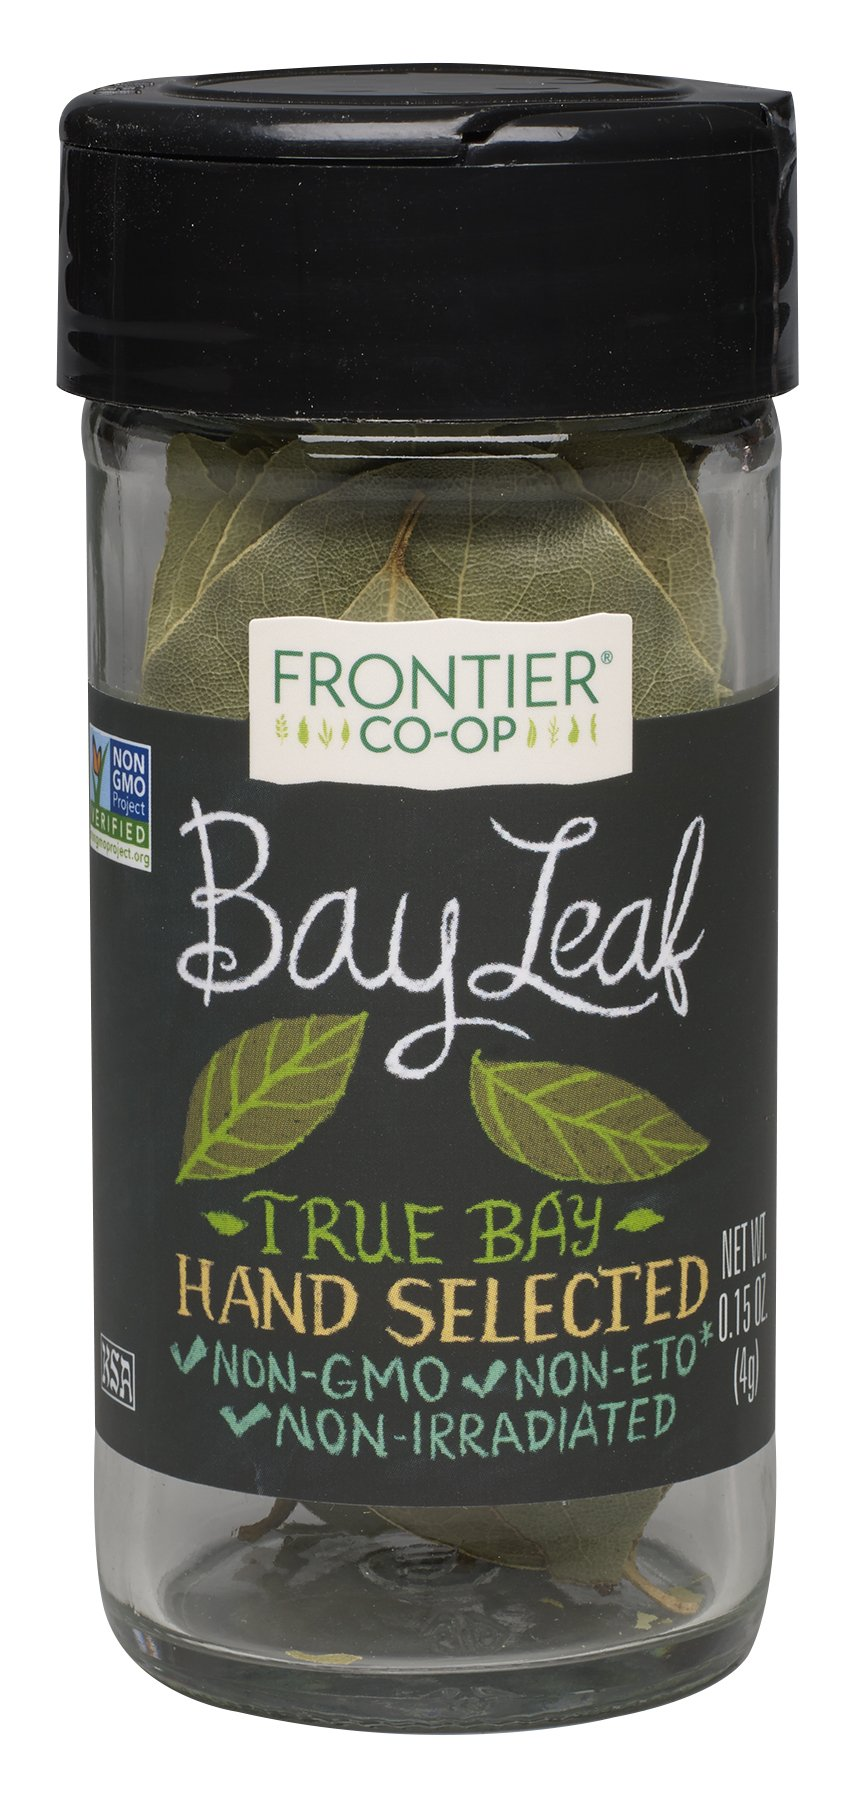 Frontier Bay Leaf Whole, 0.16 Ounce Bottles (Pack of 3)